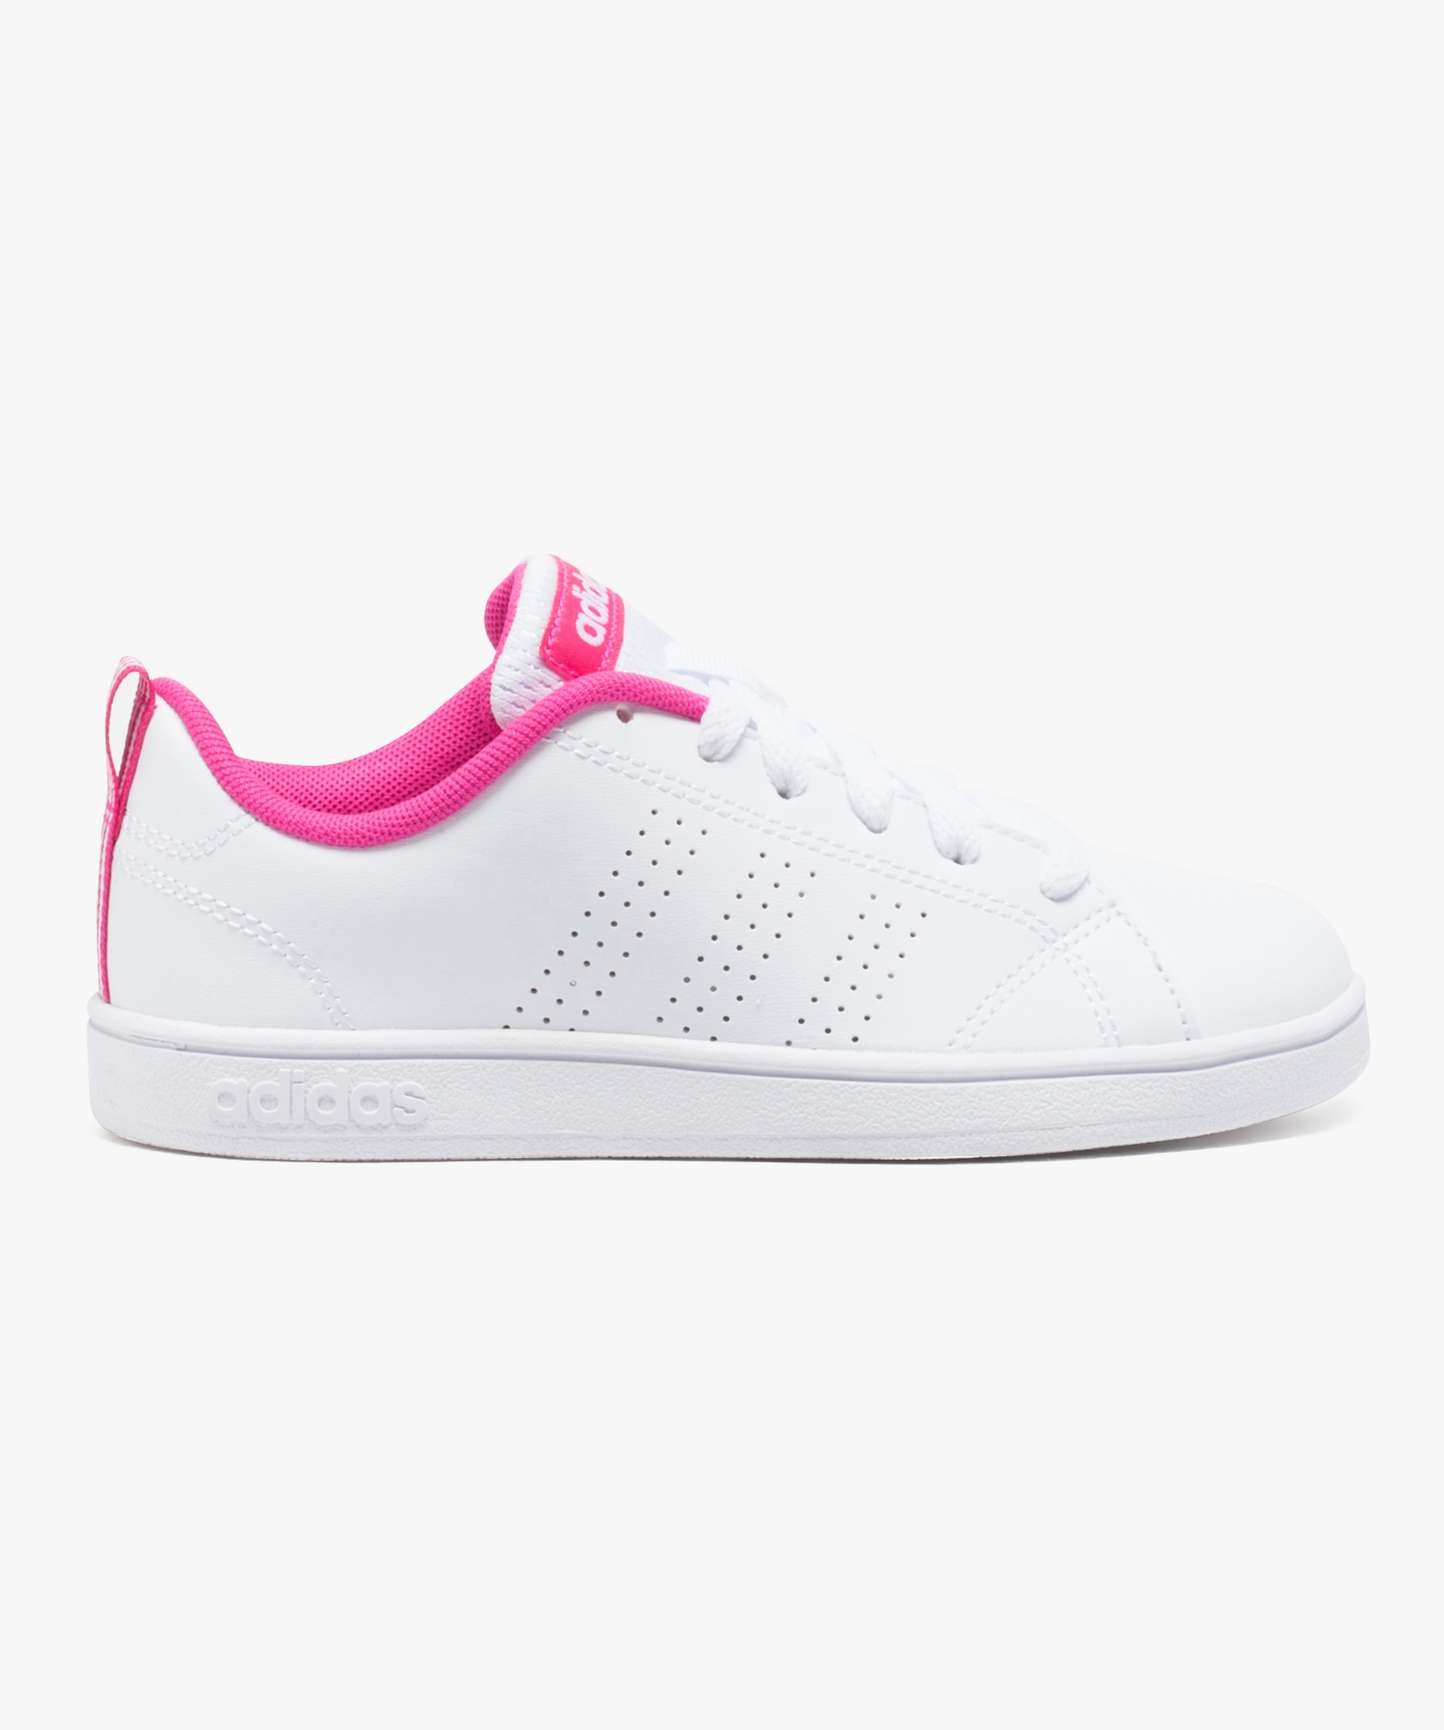 basket adidas rose et blanche Outlet Vente Authentique ...